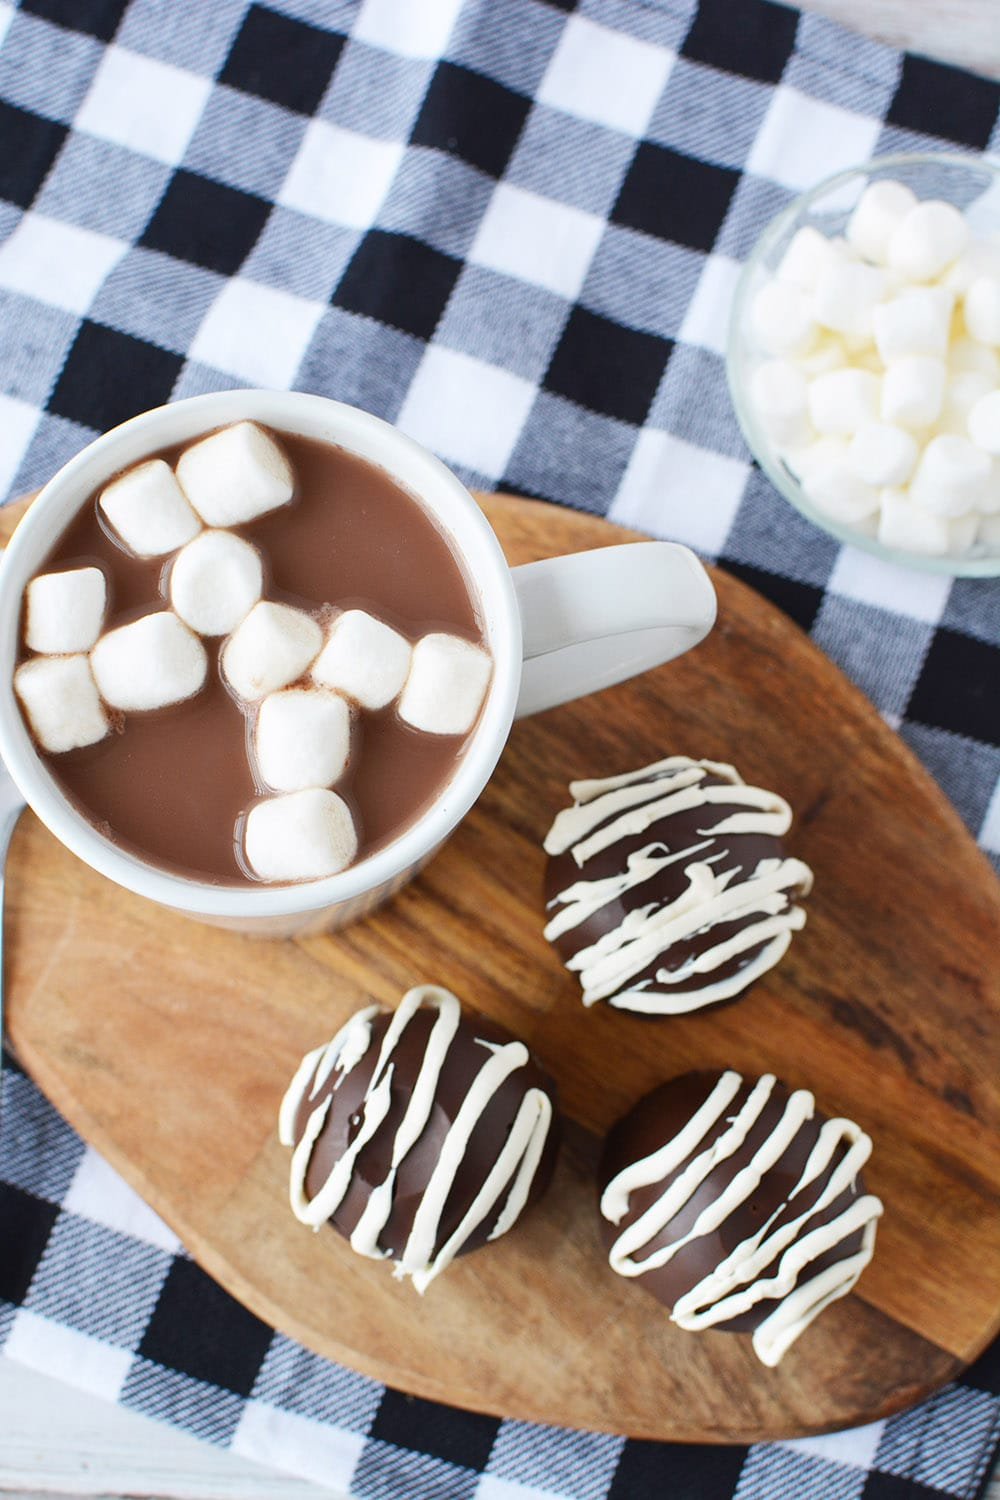 Three hot chocolate bombs next to a mug of hot chocolate with marshmallows in a bowl and a blue checked napkin.